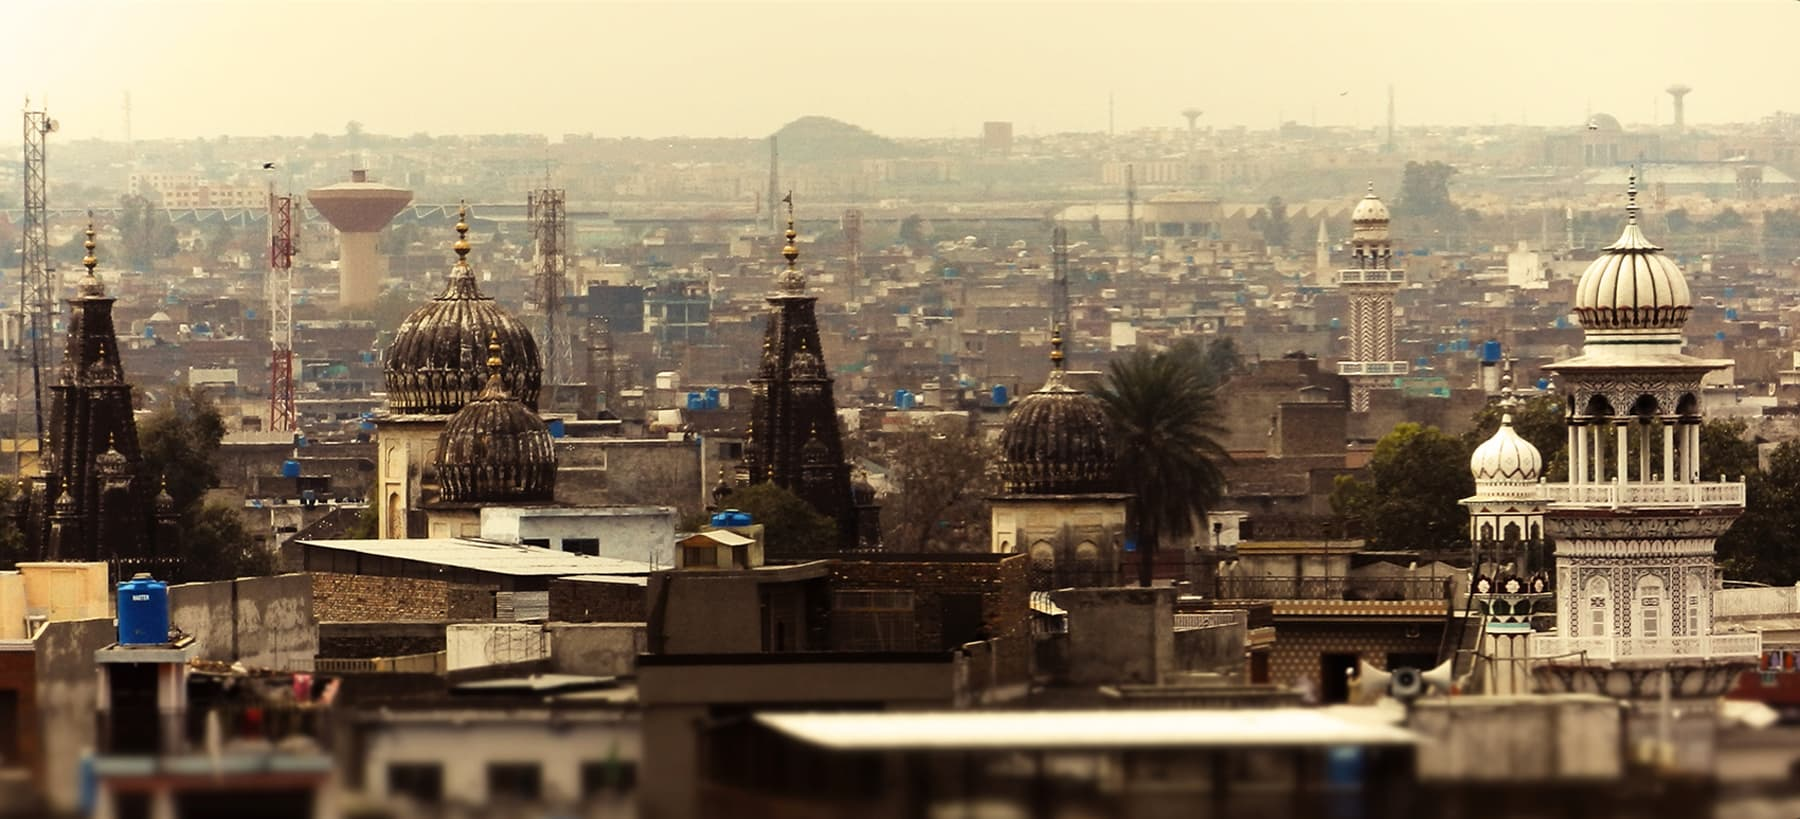 Bagh Sardaran Mandir as seen from Sujan Singh Haveli. —Muhammad Bin Naveed